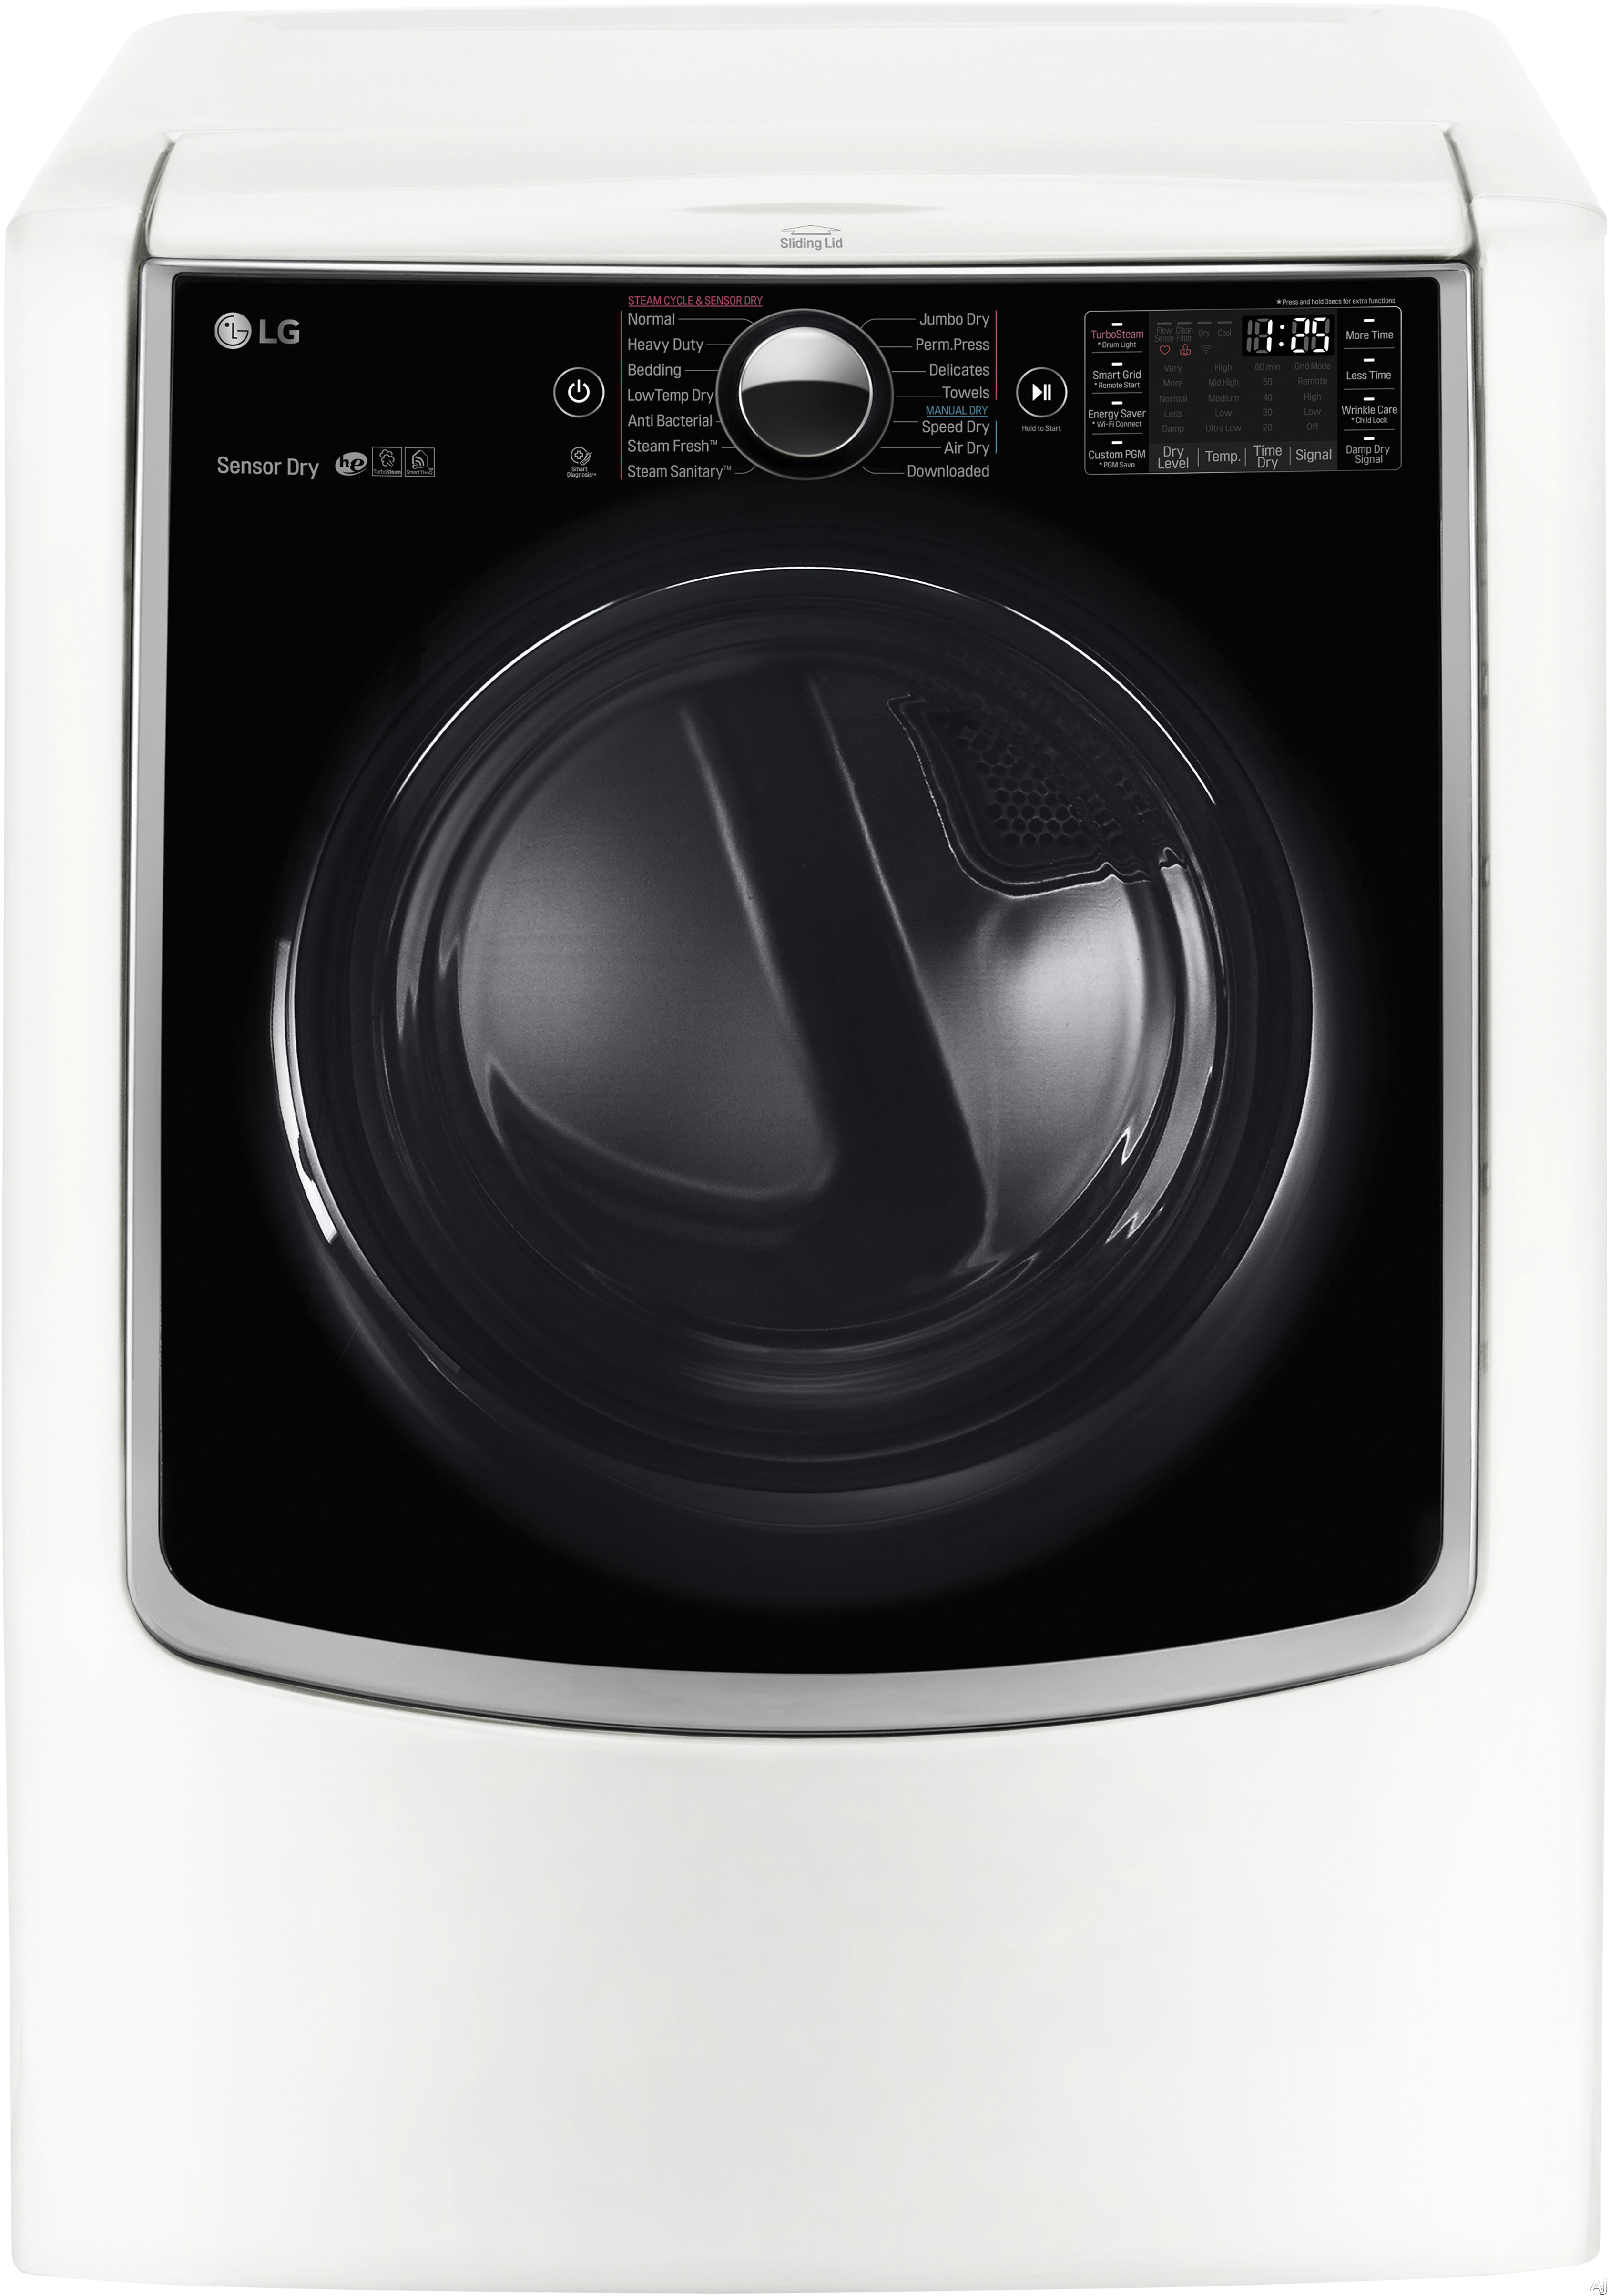 LG TurboSteam Series DLGX9001W 29 Inch 9.0 cu. ft. Gas Dryer with Sensor Dry TurboSteam Smart ThinQ 14 Dry Cycles 5 Temperature Selections Wrinkle Care Steam Fresh and ENERGY STAR Qualification White